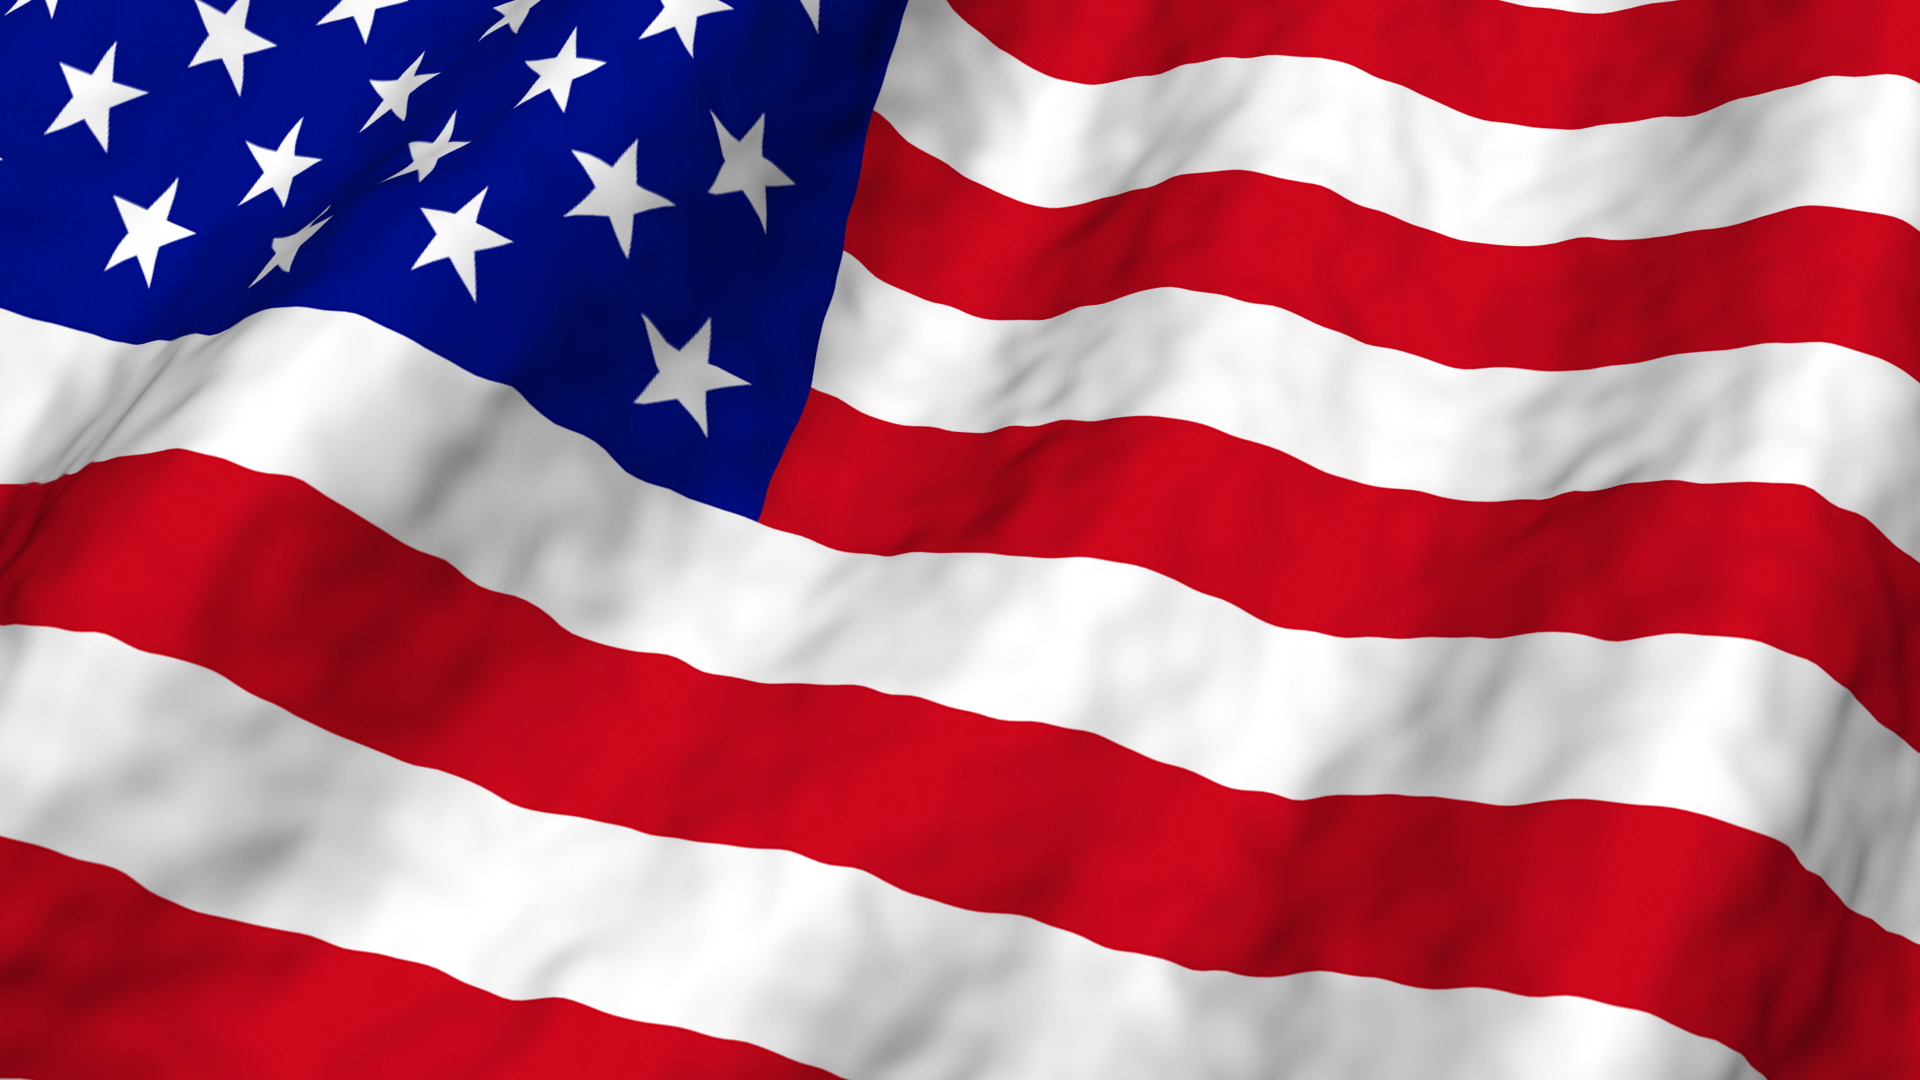 USA-Flag-images-wallpapers